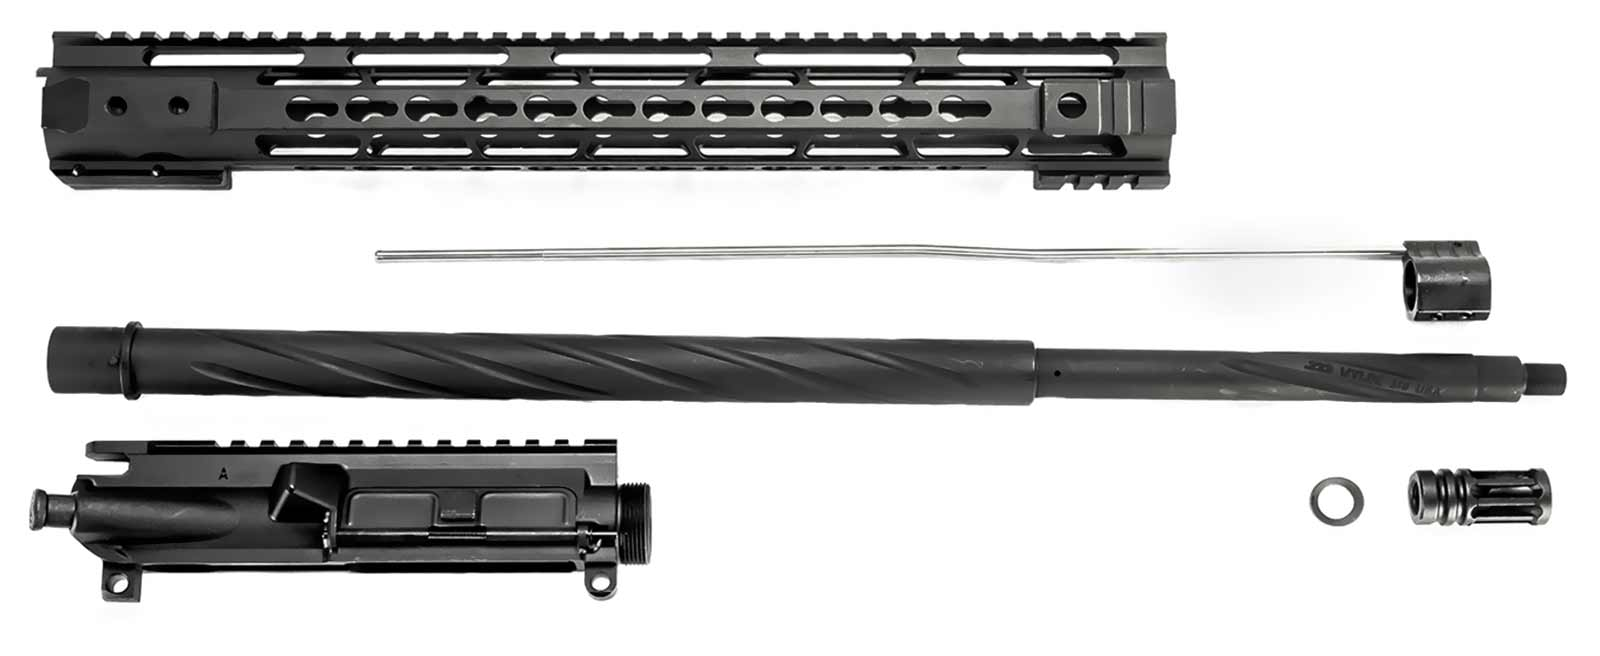 ar-15-unassembled-upper-assembly-20-223-5-56-1-8-spiral-flute-15-cbc-arms-keymod-ar-15-handguard-rail-updated